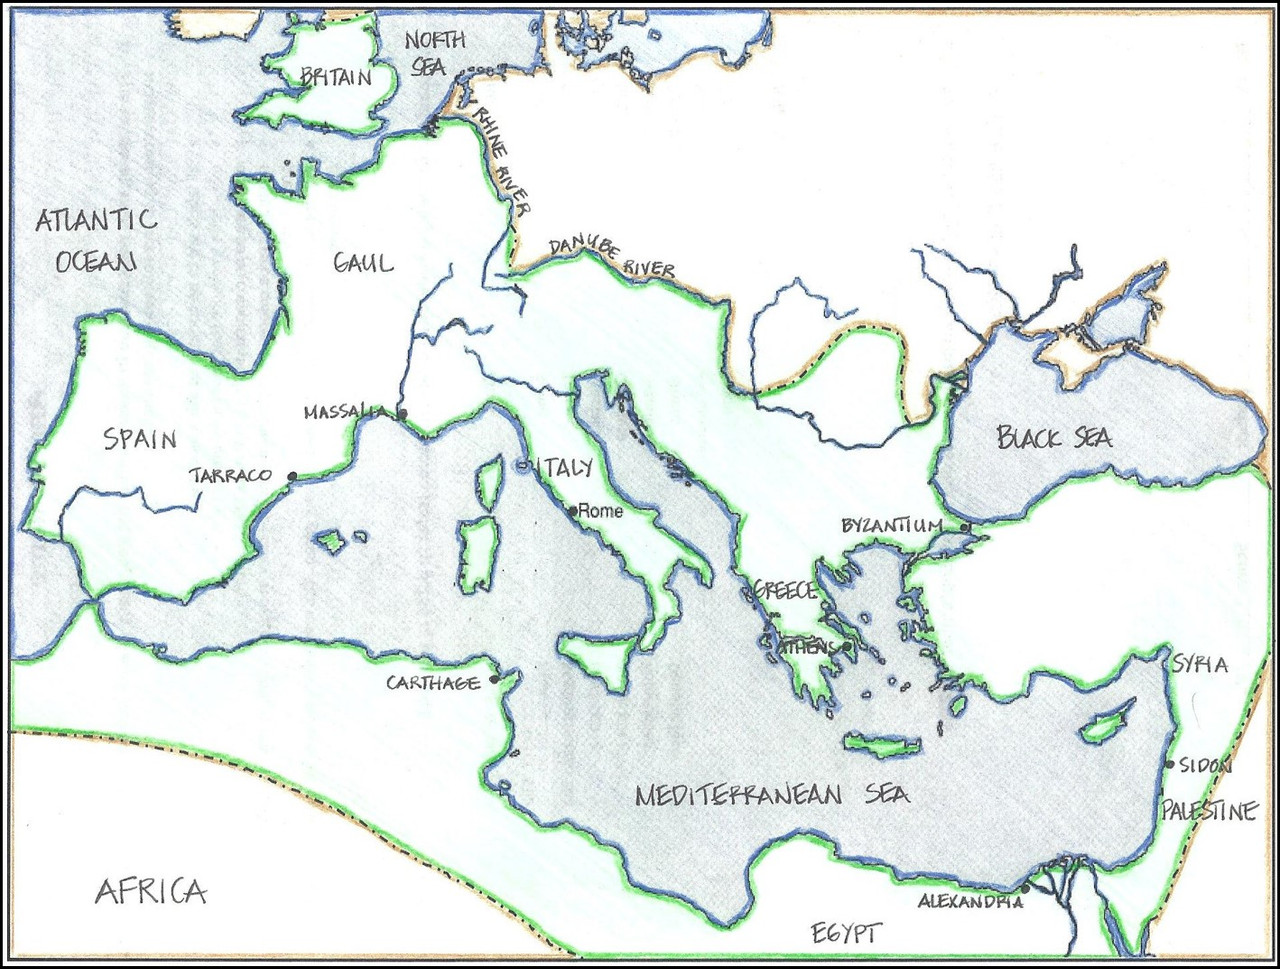 medium resolution of Map: Ancient Rome - Amped Up Learning